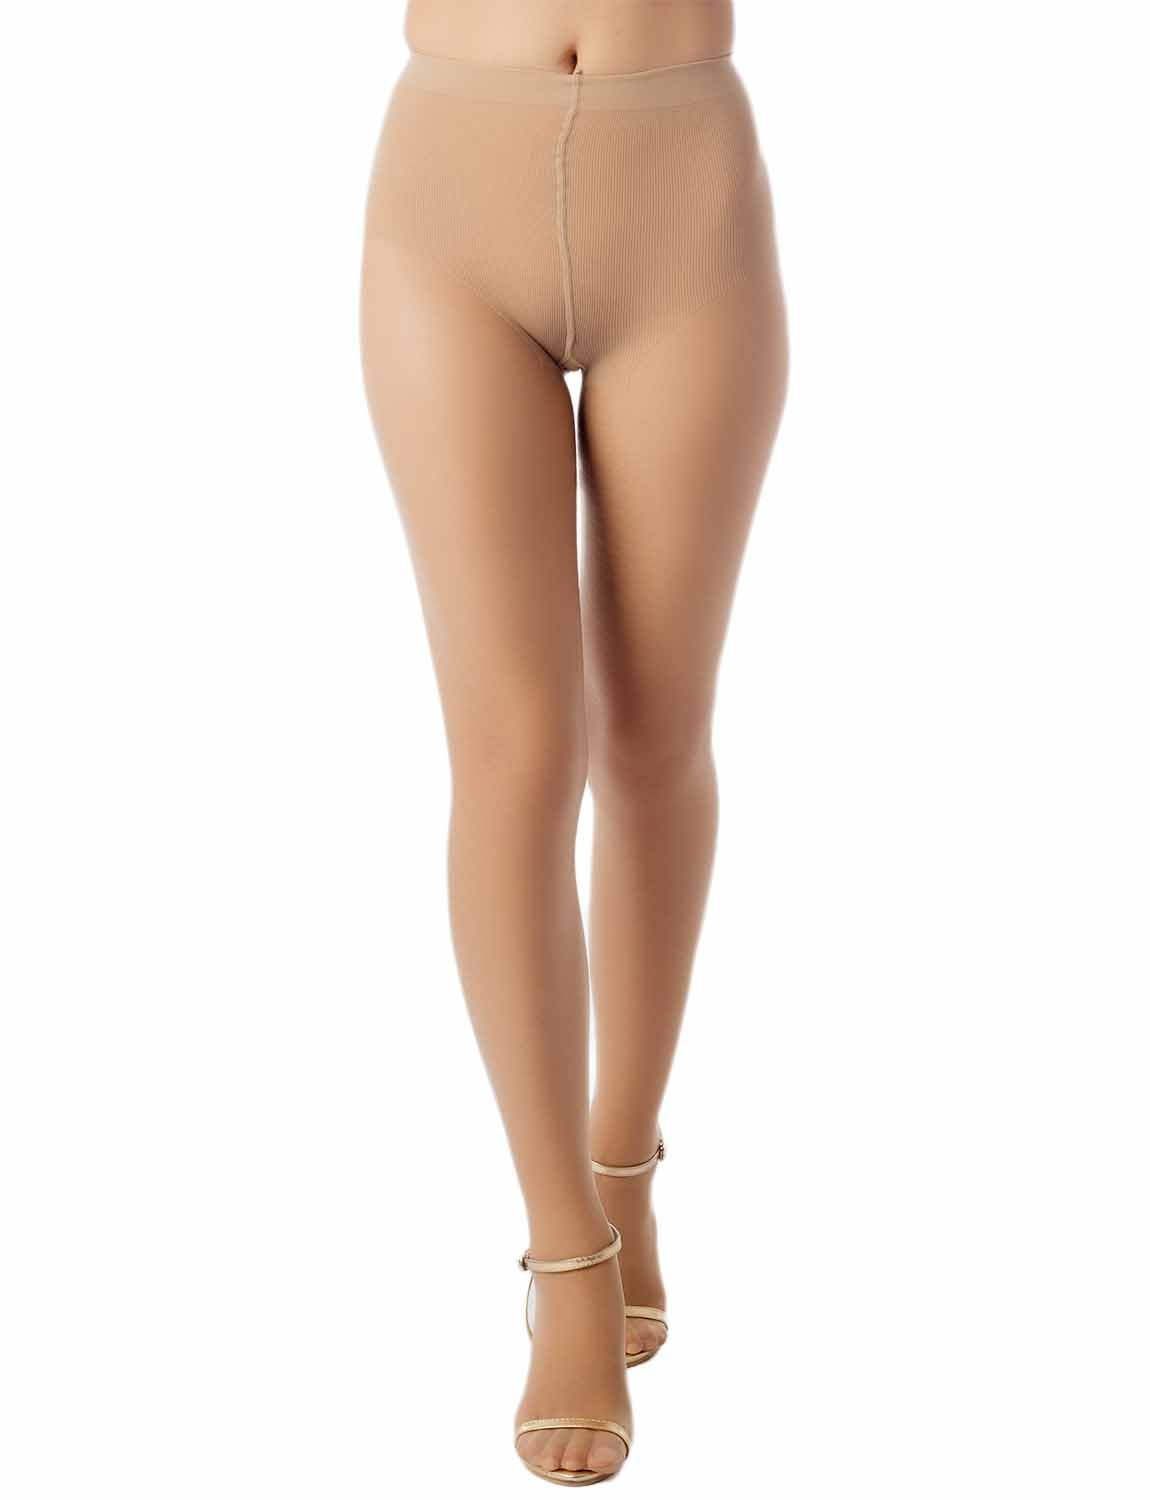 Women's Fish Scale Sheers Leg Darkened 5 DEN Ultra Sheer Tights Pantyhose, Size: One Size, Beige